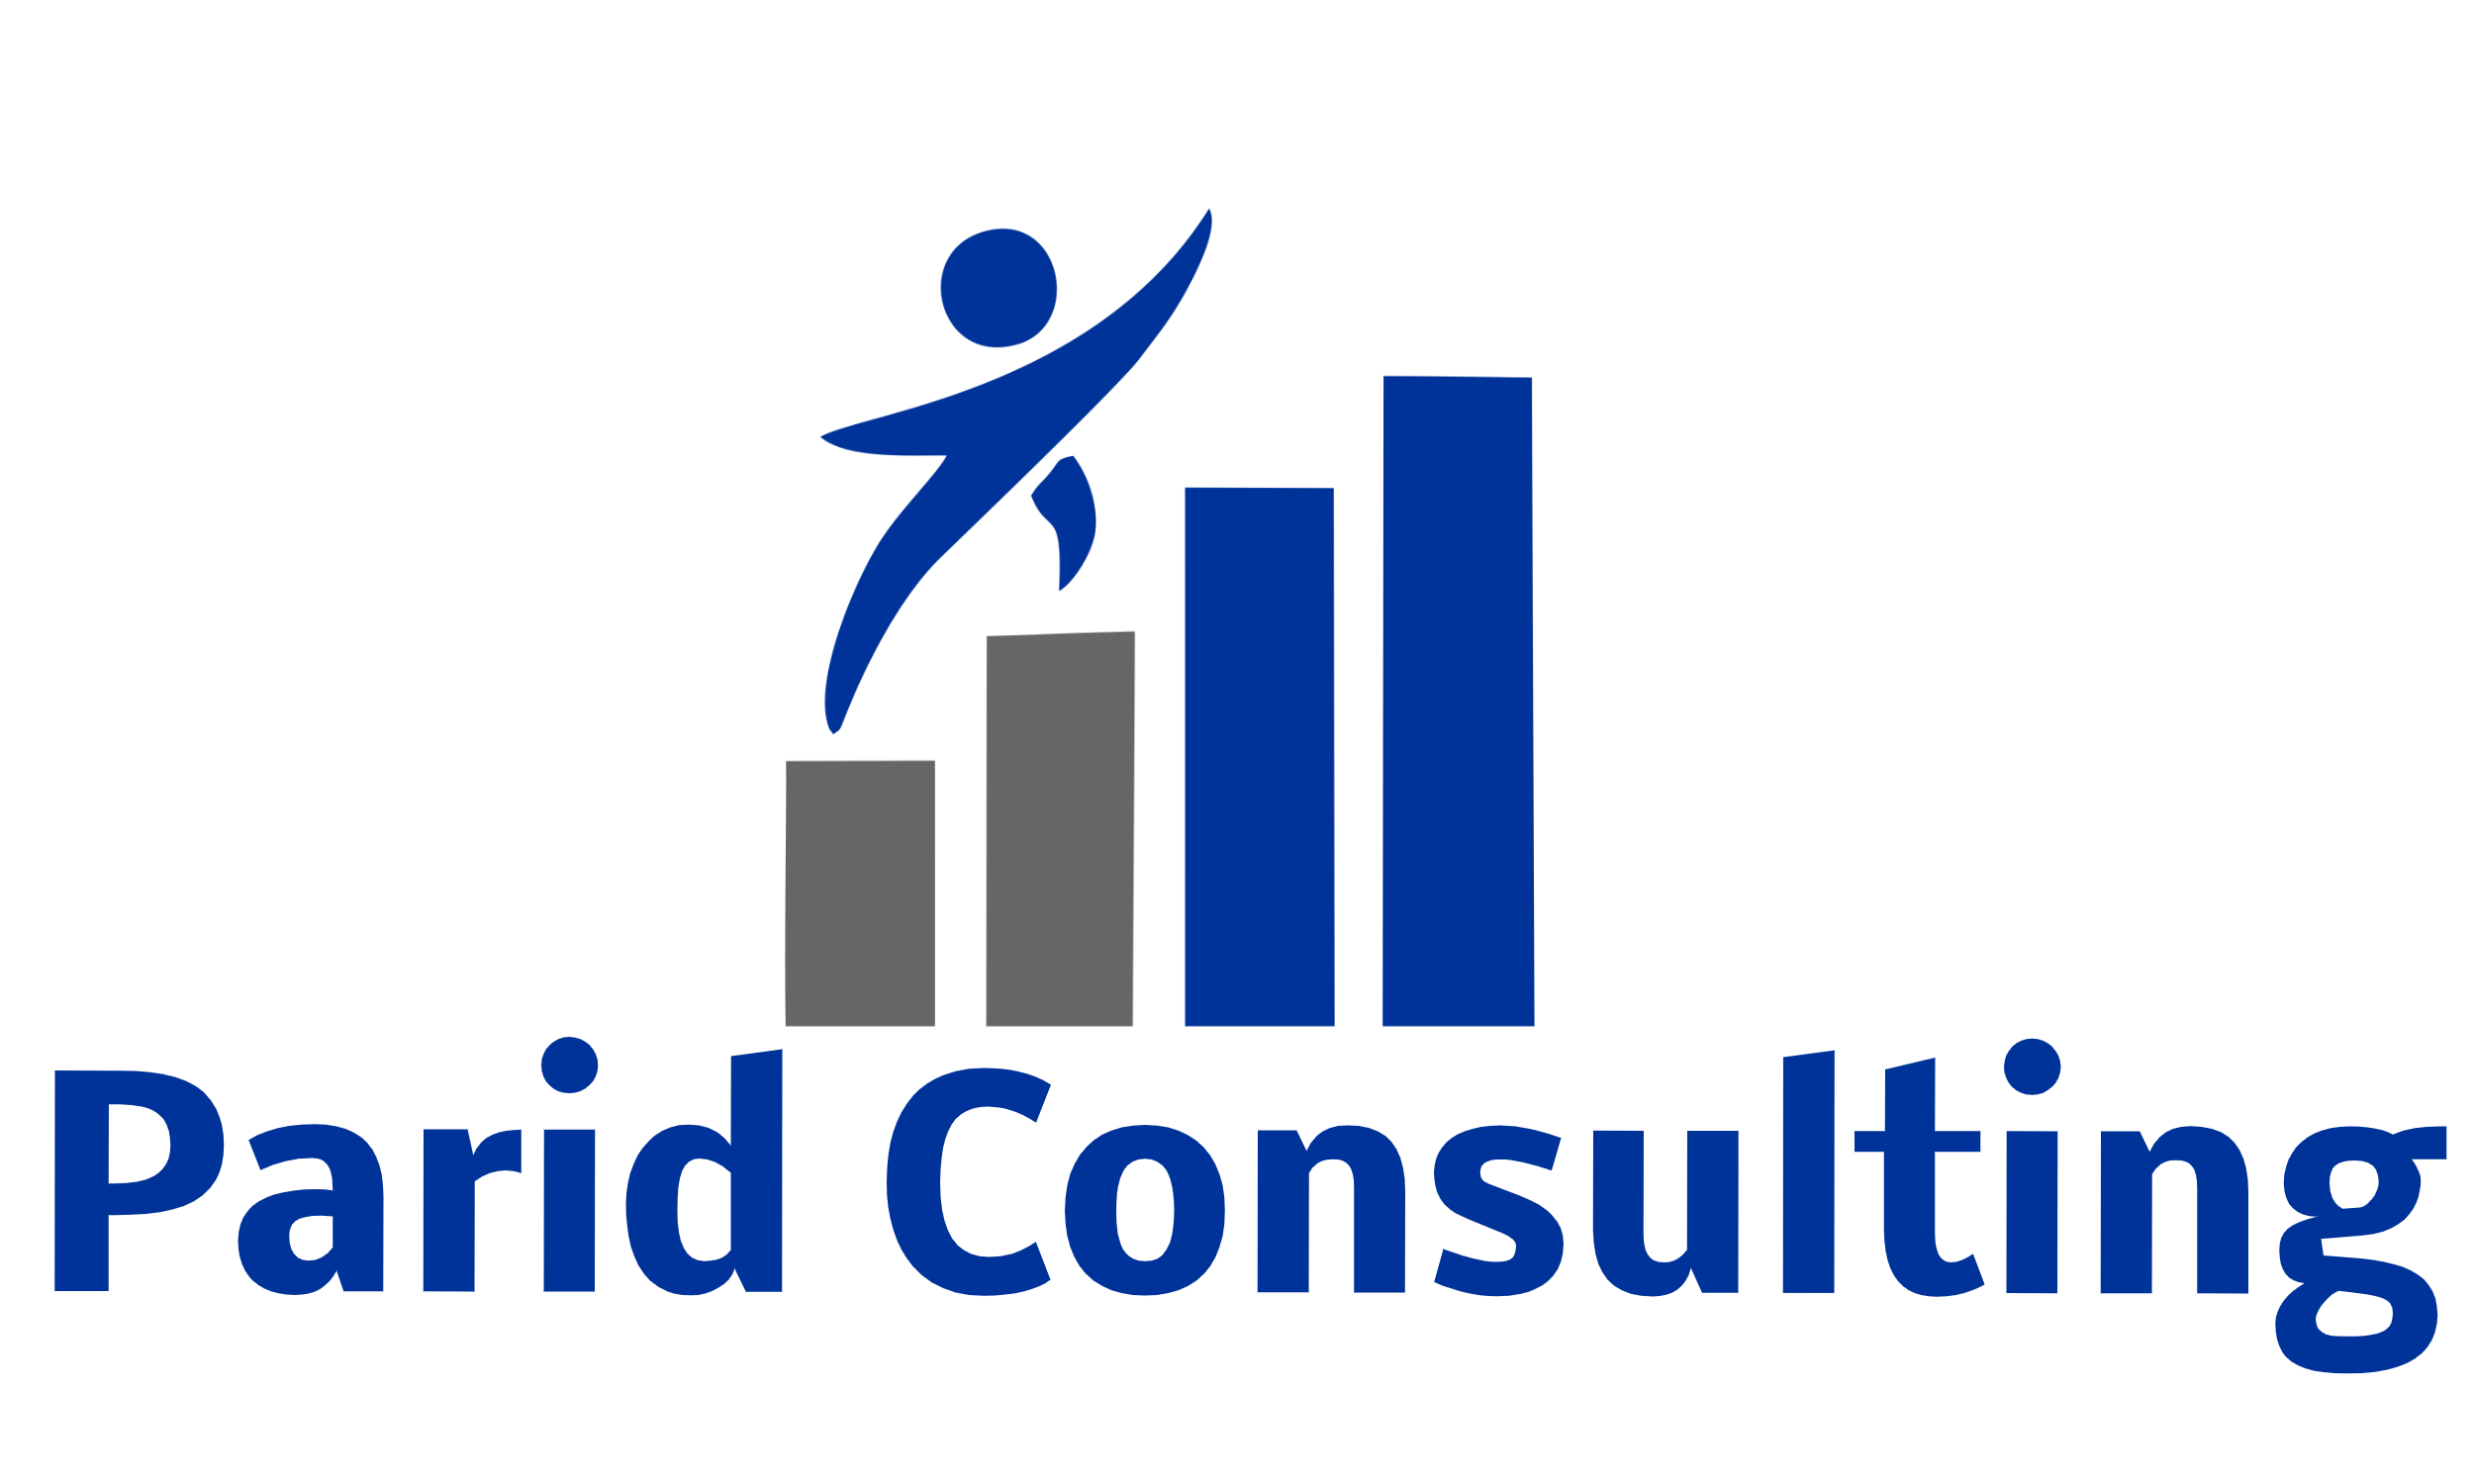 ParidConsulting.al